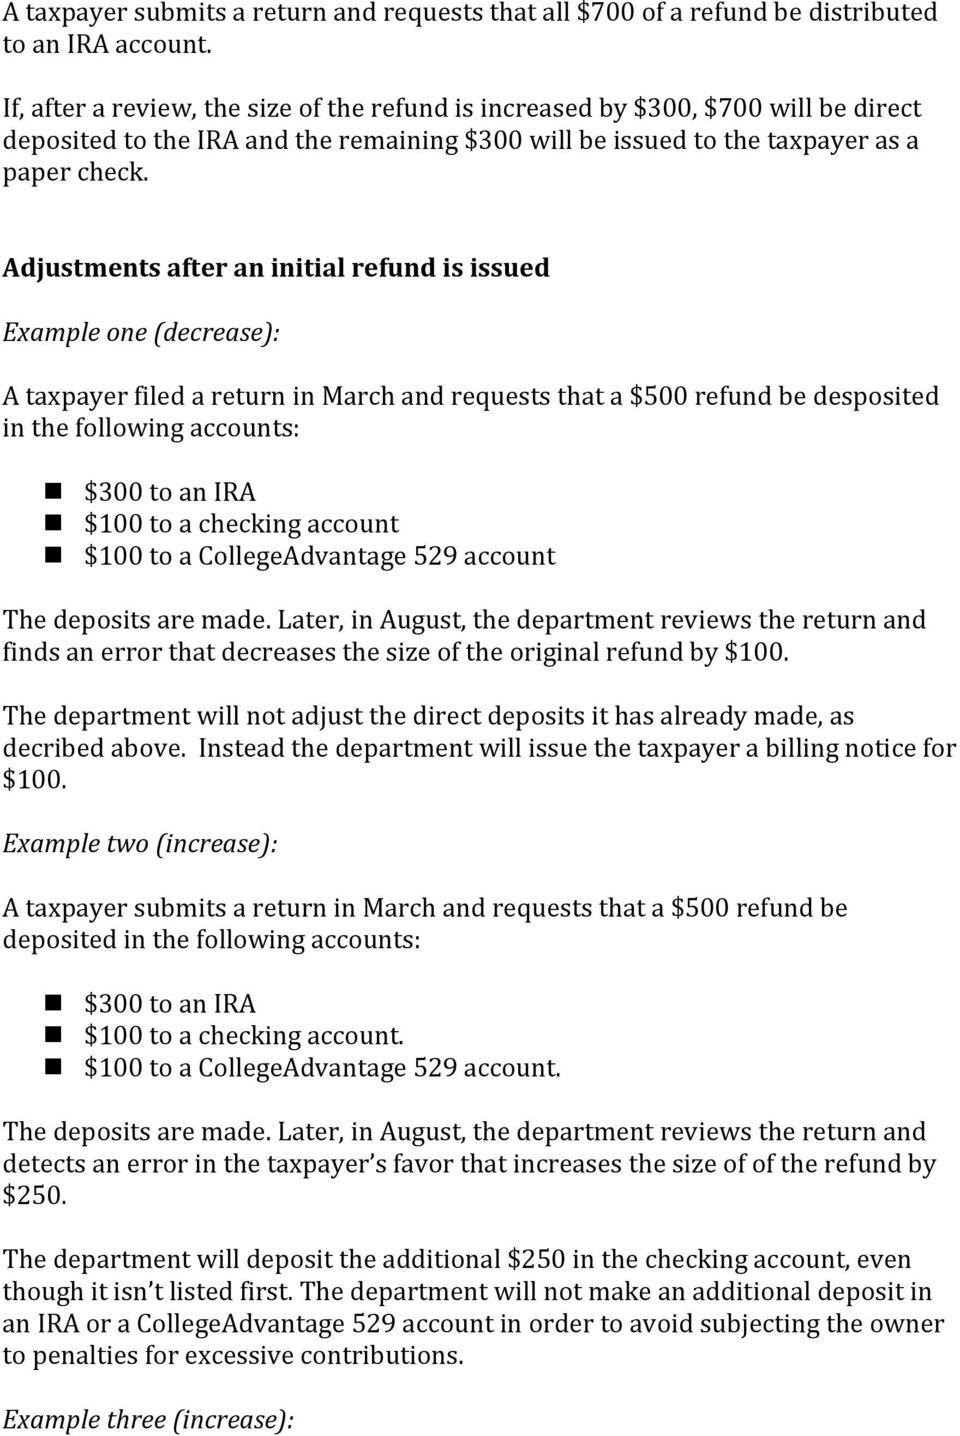 Adjustments after an initial refund is issued Example one (decrease): A taxpayer filed a return in March and requests that a $500 refund be desposited in the following accounts: $300 to an IRA $100